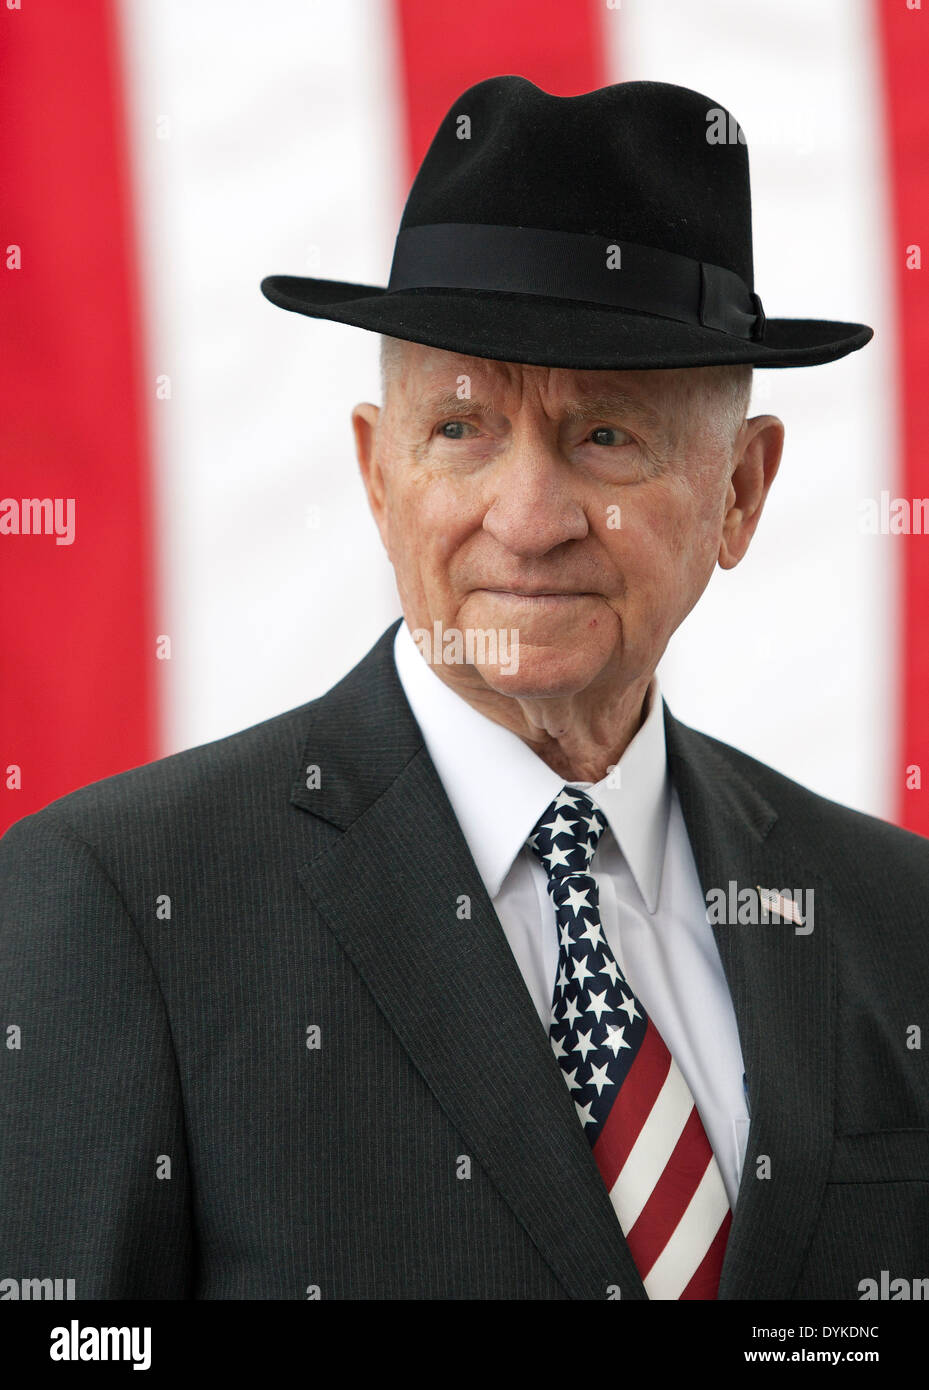 ross perot - photo #19